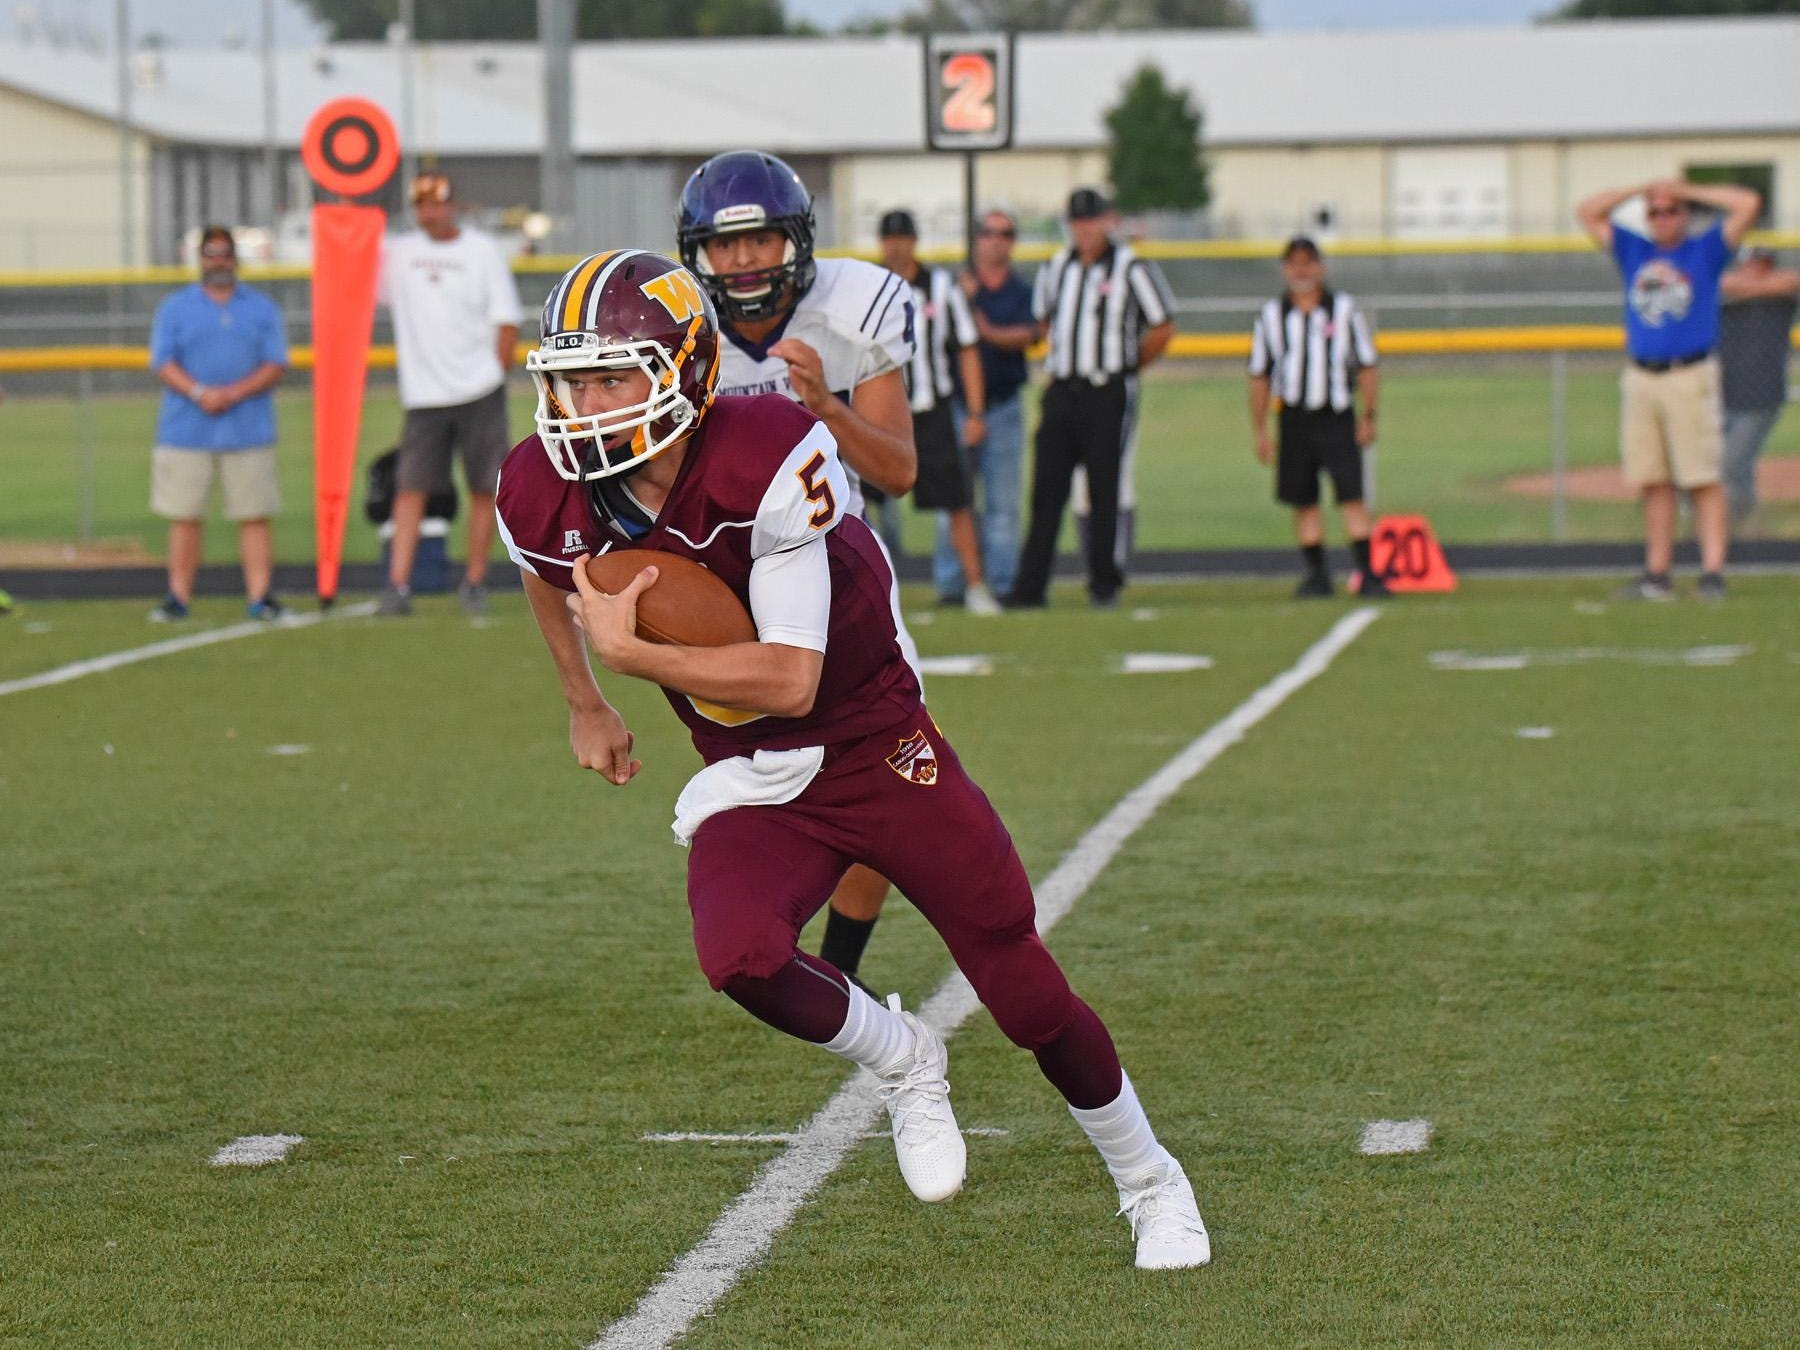 Windsor quarterback Brad Peeples, shown in a scrimmage last month, made his first start Friday night. The Wizards defeated Roosevelt 25-12 on the road.